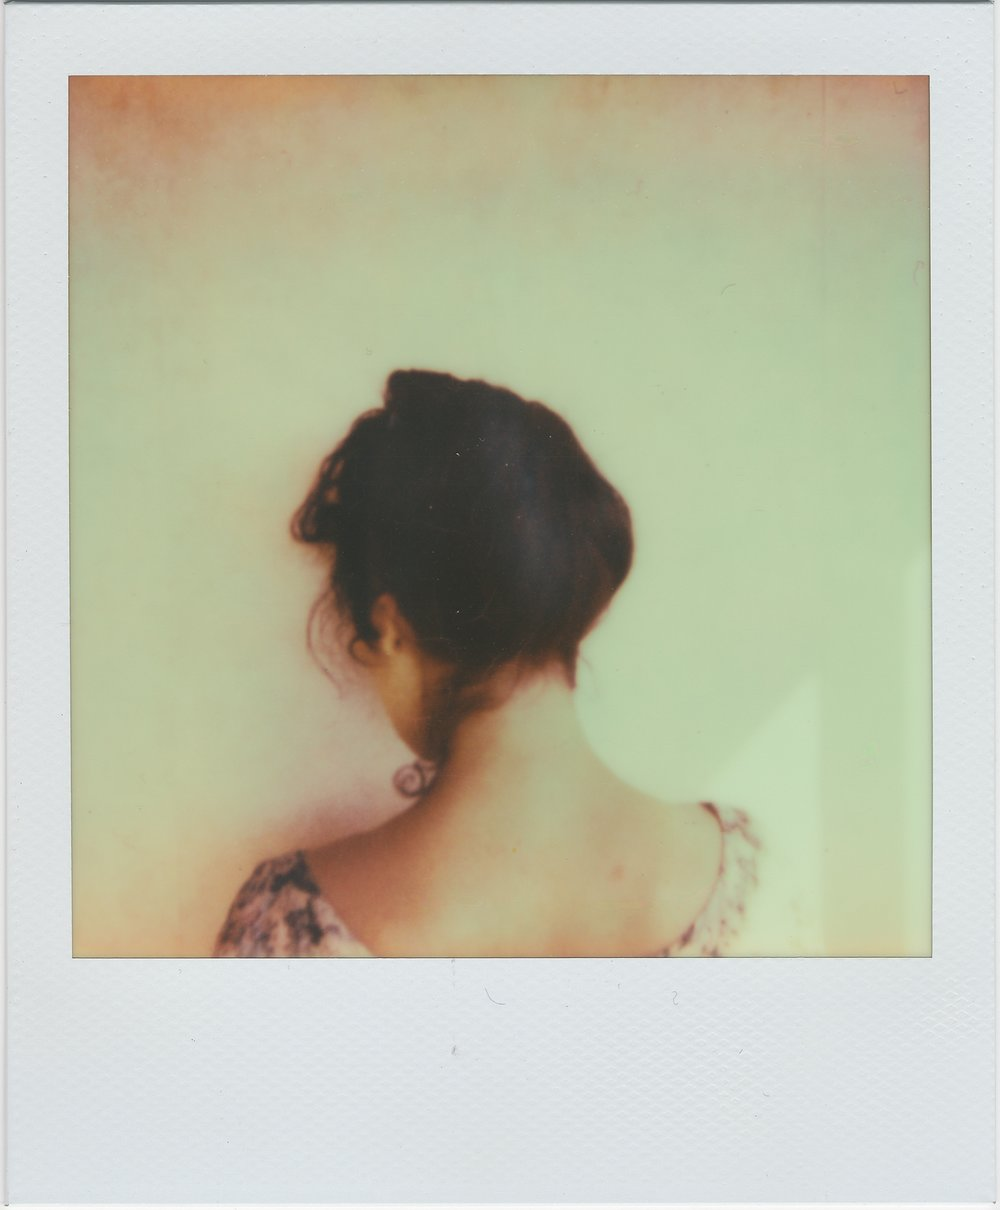 untitled | polaroid 600 camera | IP px680 | celeste ortiz